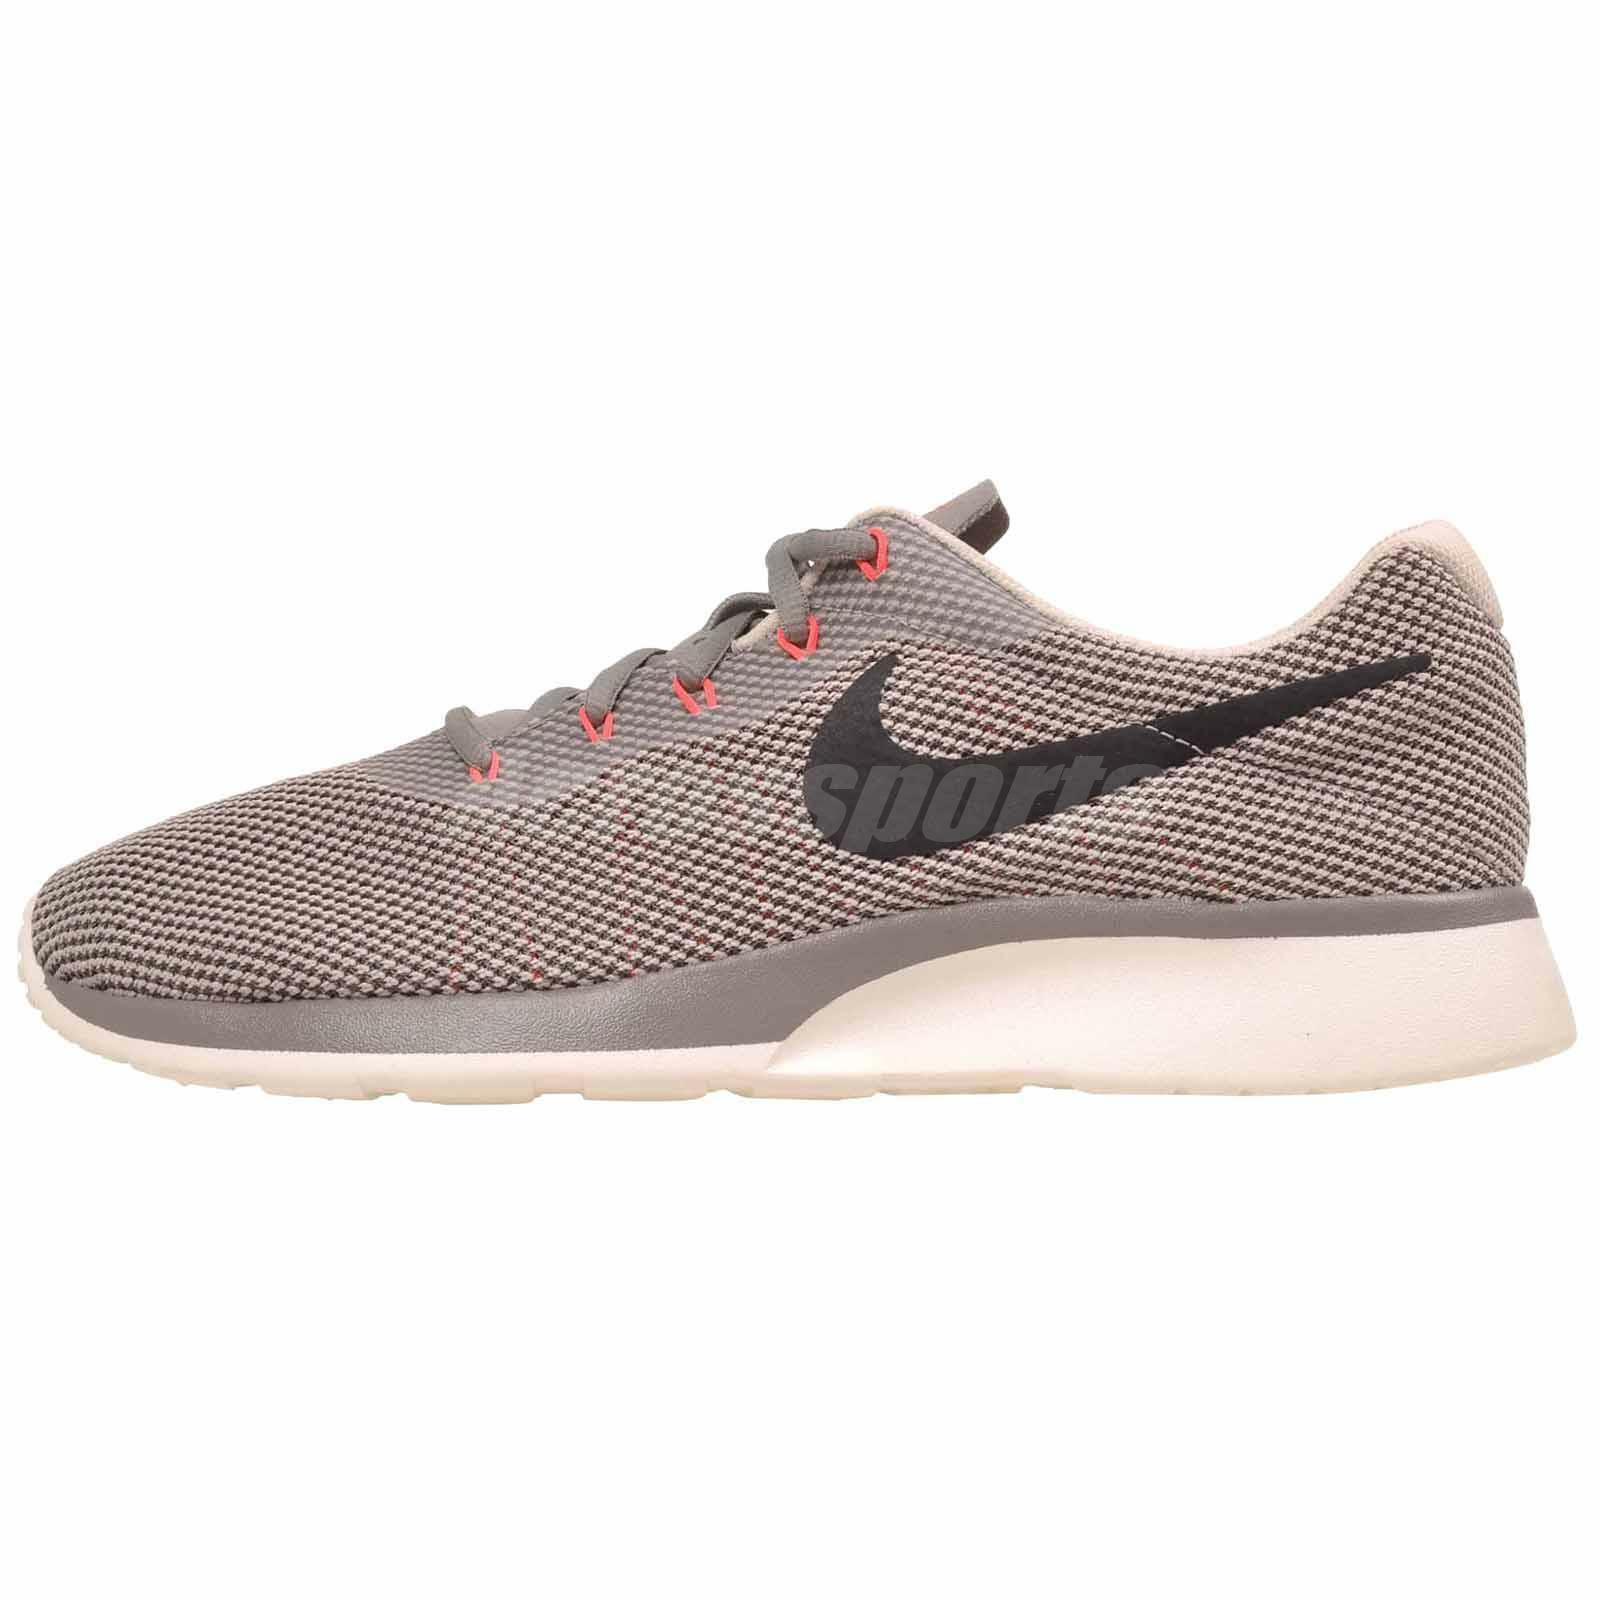 Nike Shoes Tanjun Racer Running Uomo Shoes Nike Dust Cobblestone 921669-003 8b3c73